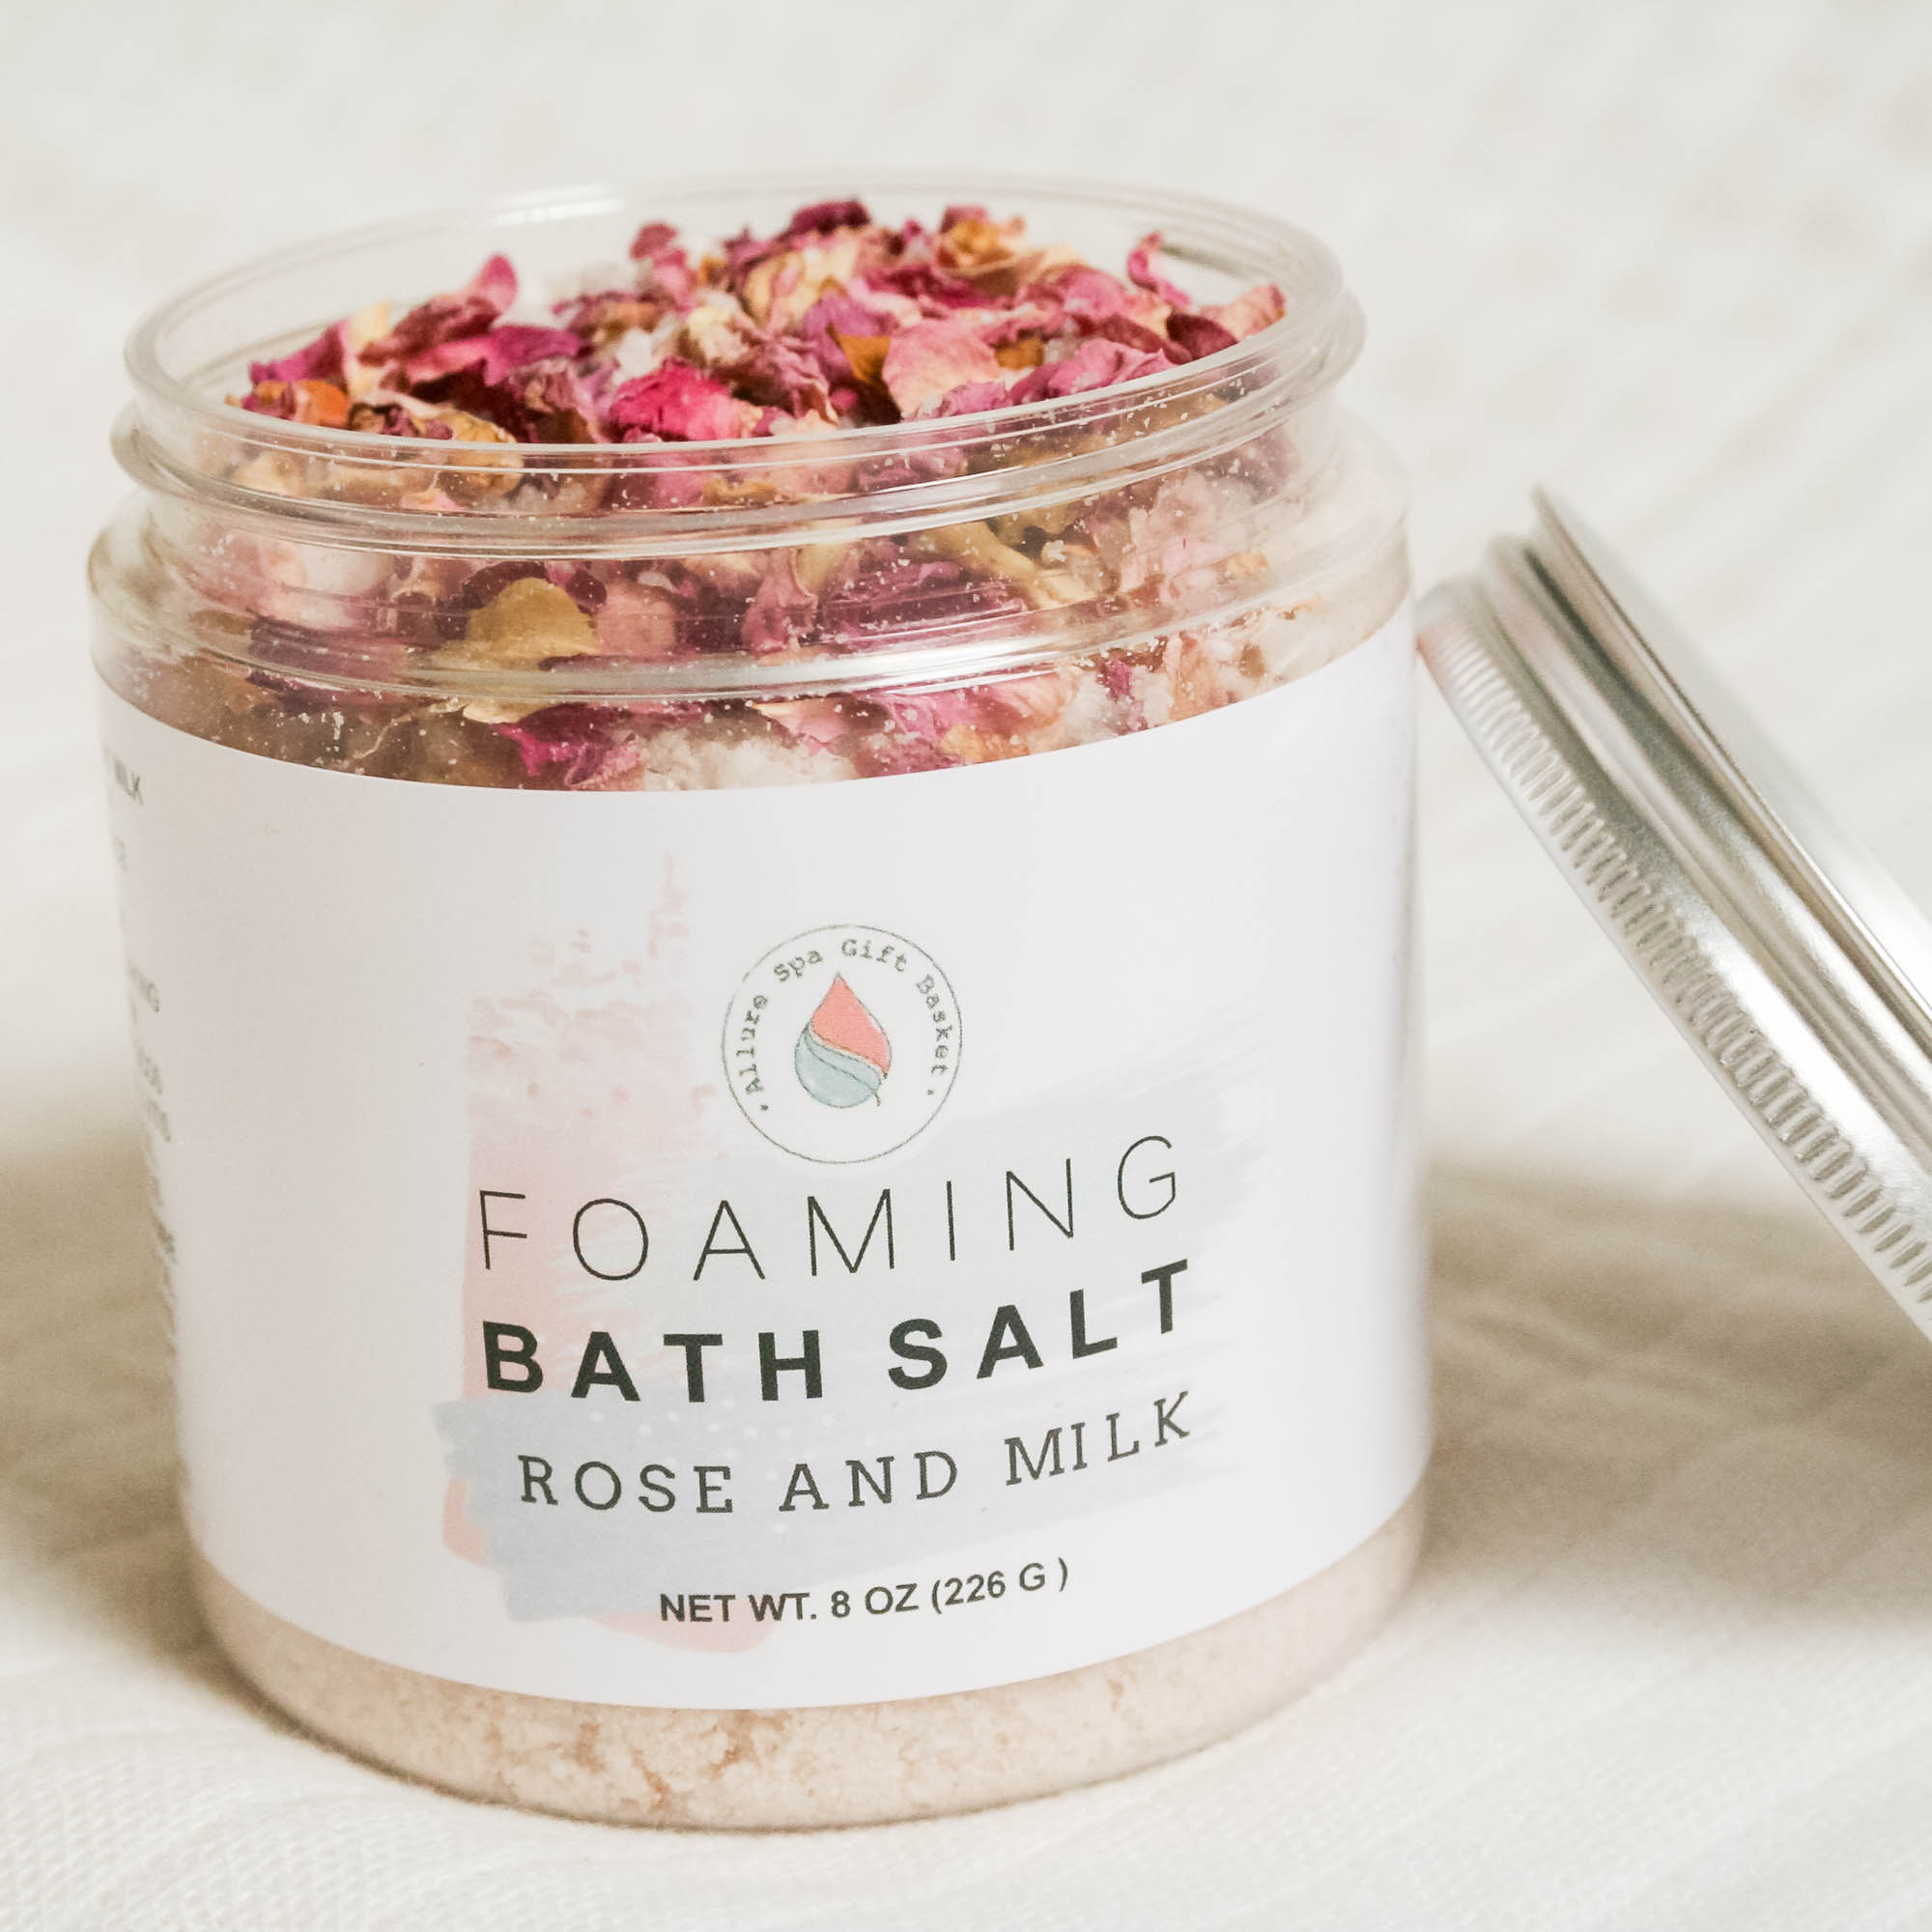 Rose and Milk Foaming Bath Salt